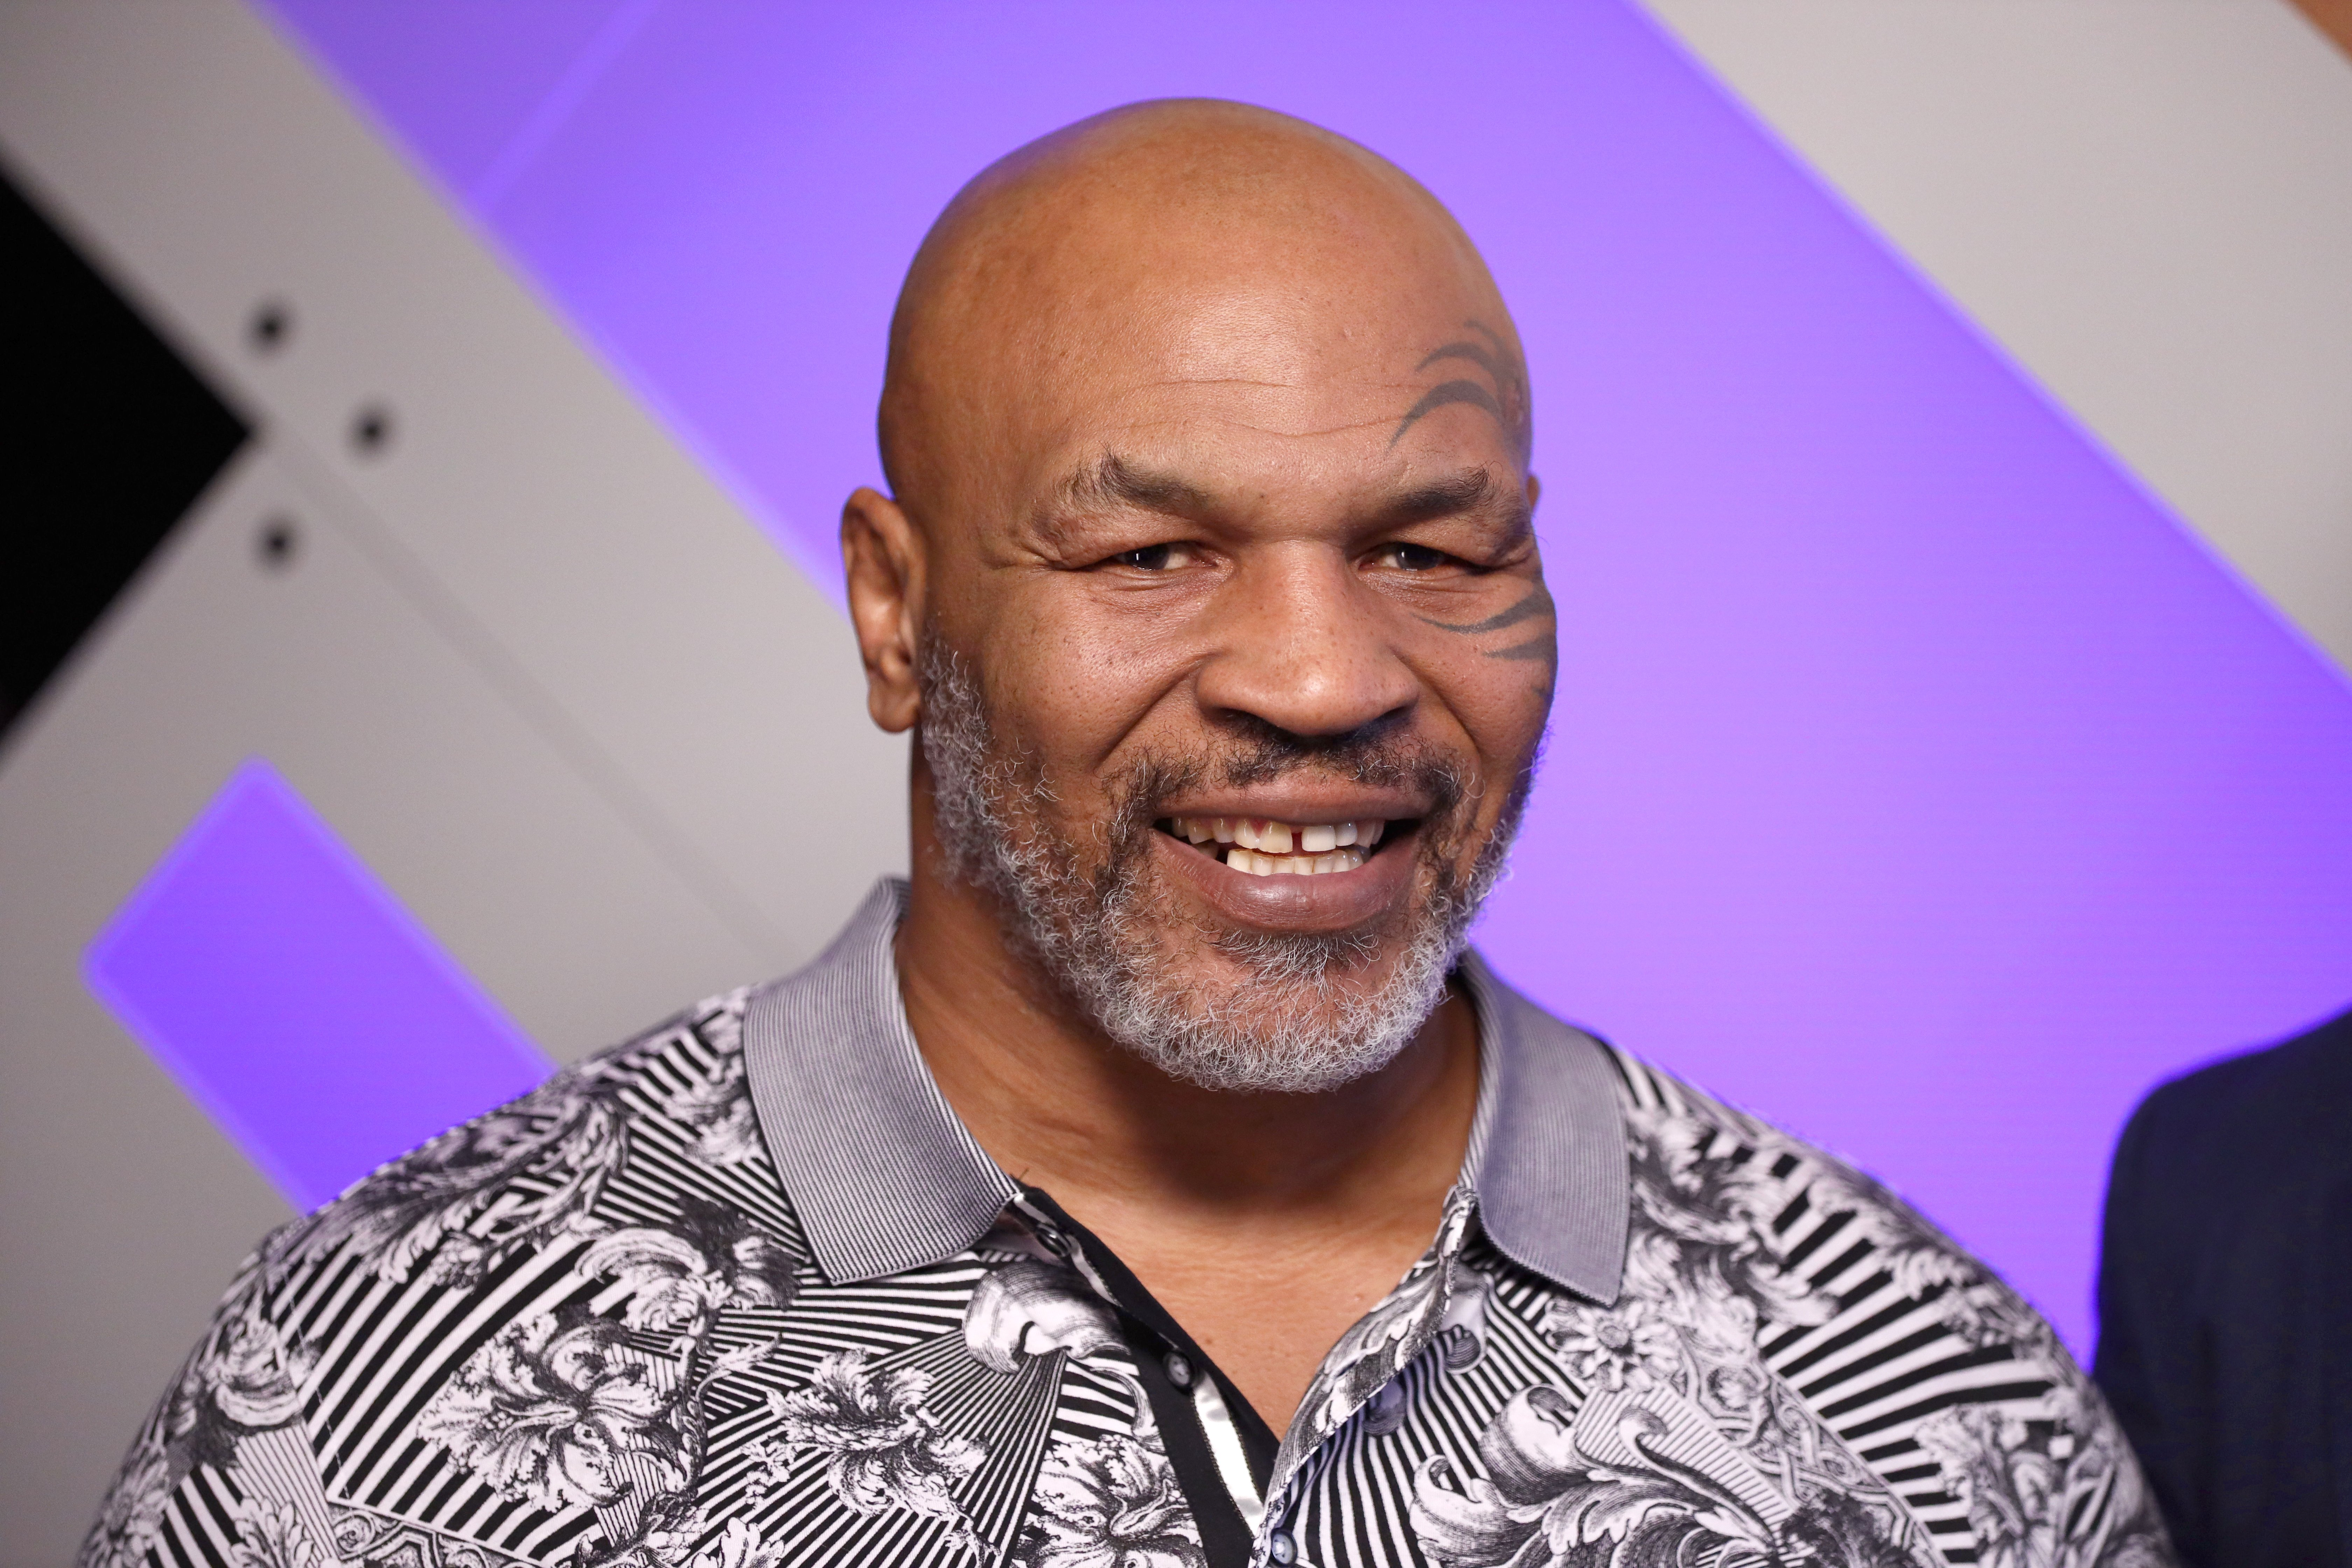 Mike Tyson speaks with Mario Lopez at Capital One Podcast Studio during the 2019 iHeartRadio Podcast Awards Presented by Capital One at the iHeartRadio Theater LA on January 18, 2019, in Burbank, California. | Source: Getty Images.